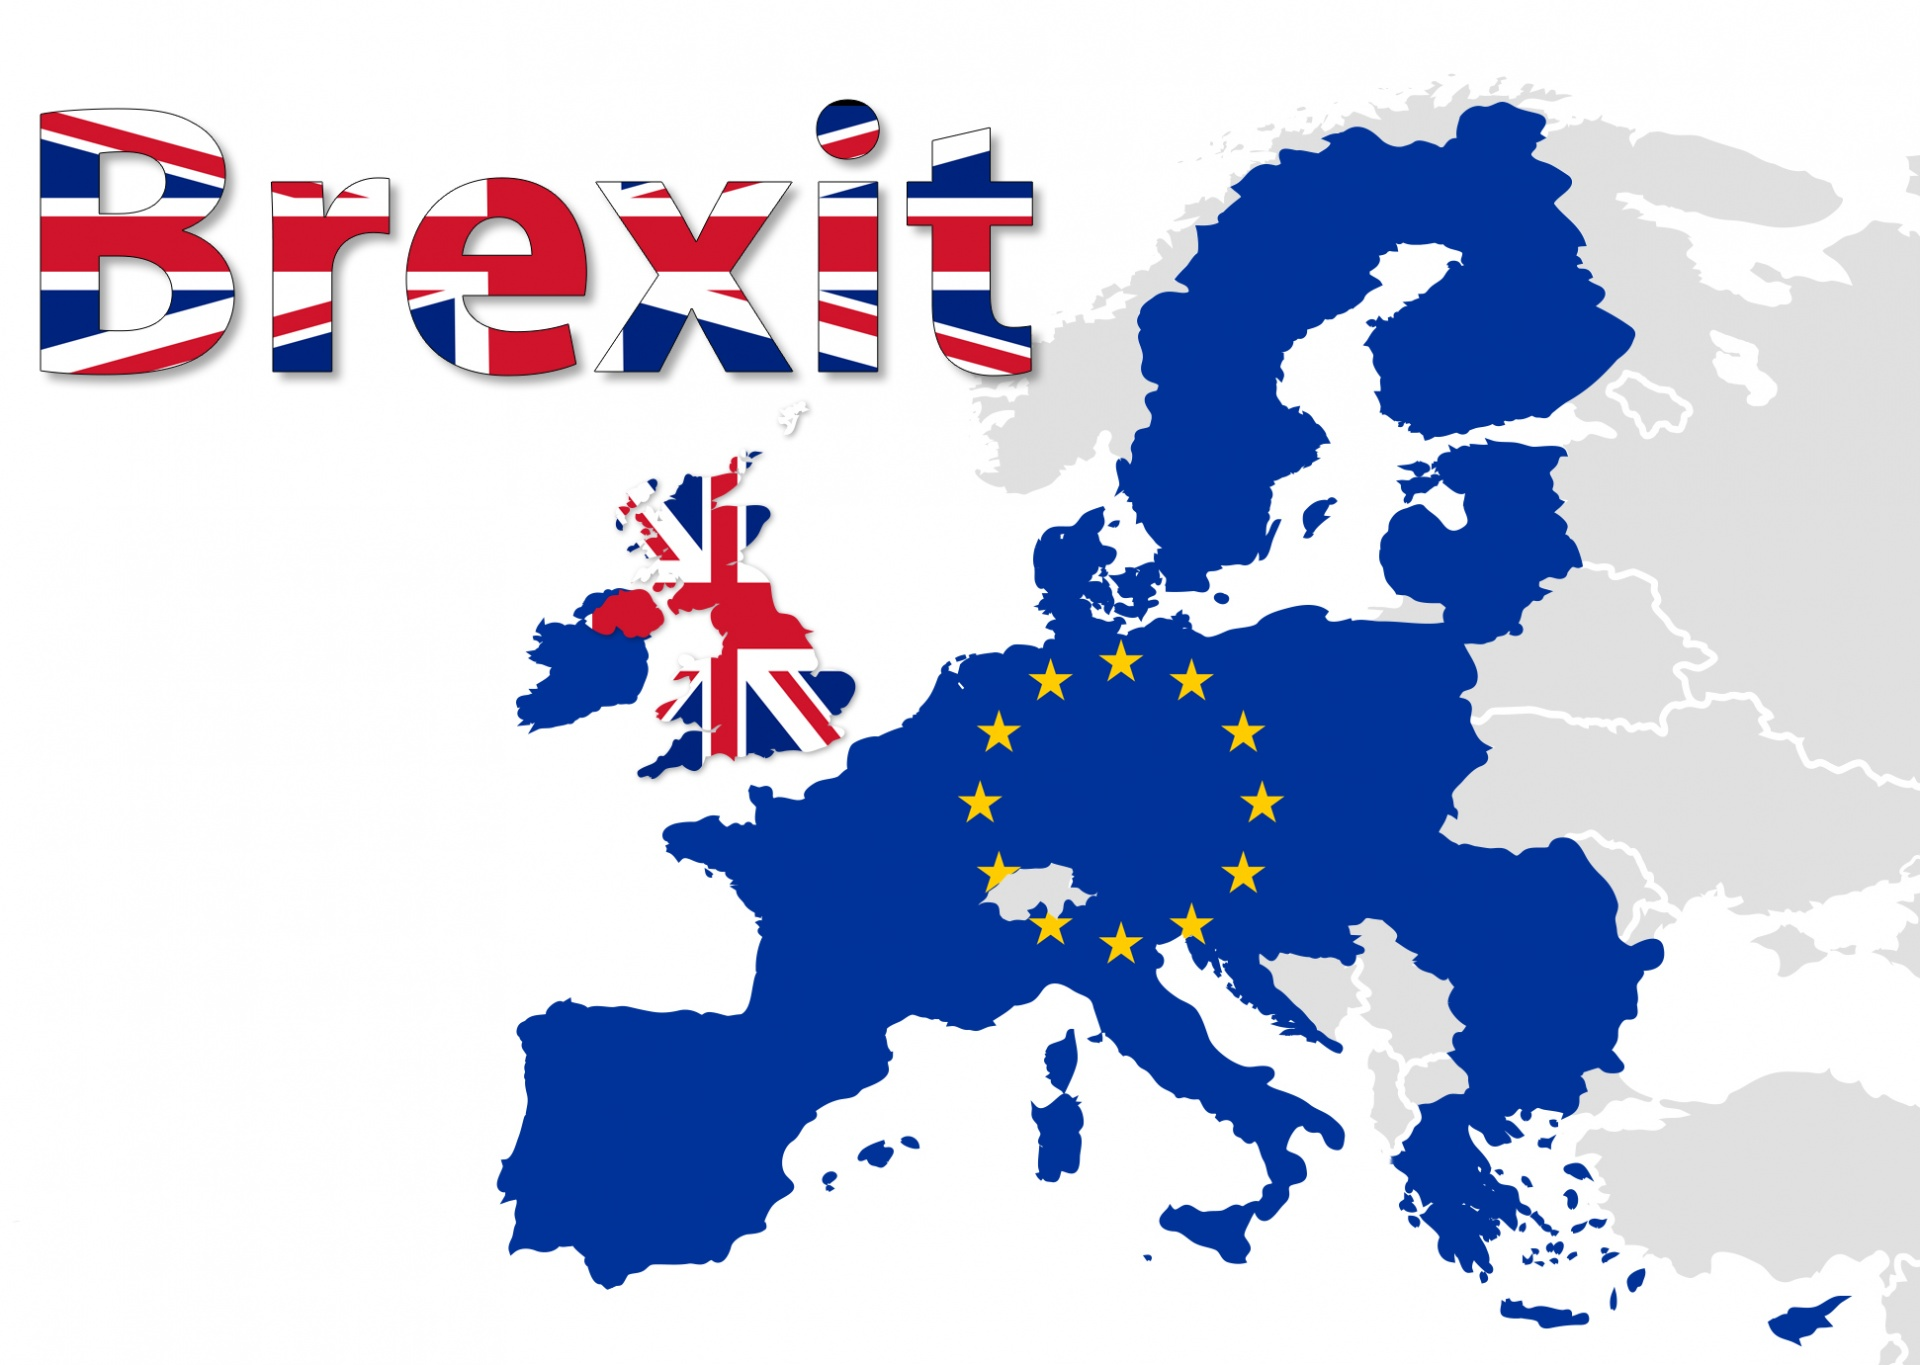 Are you ready for Brexit?